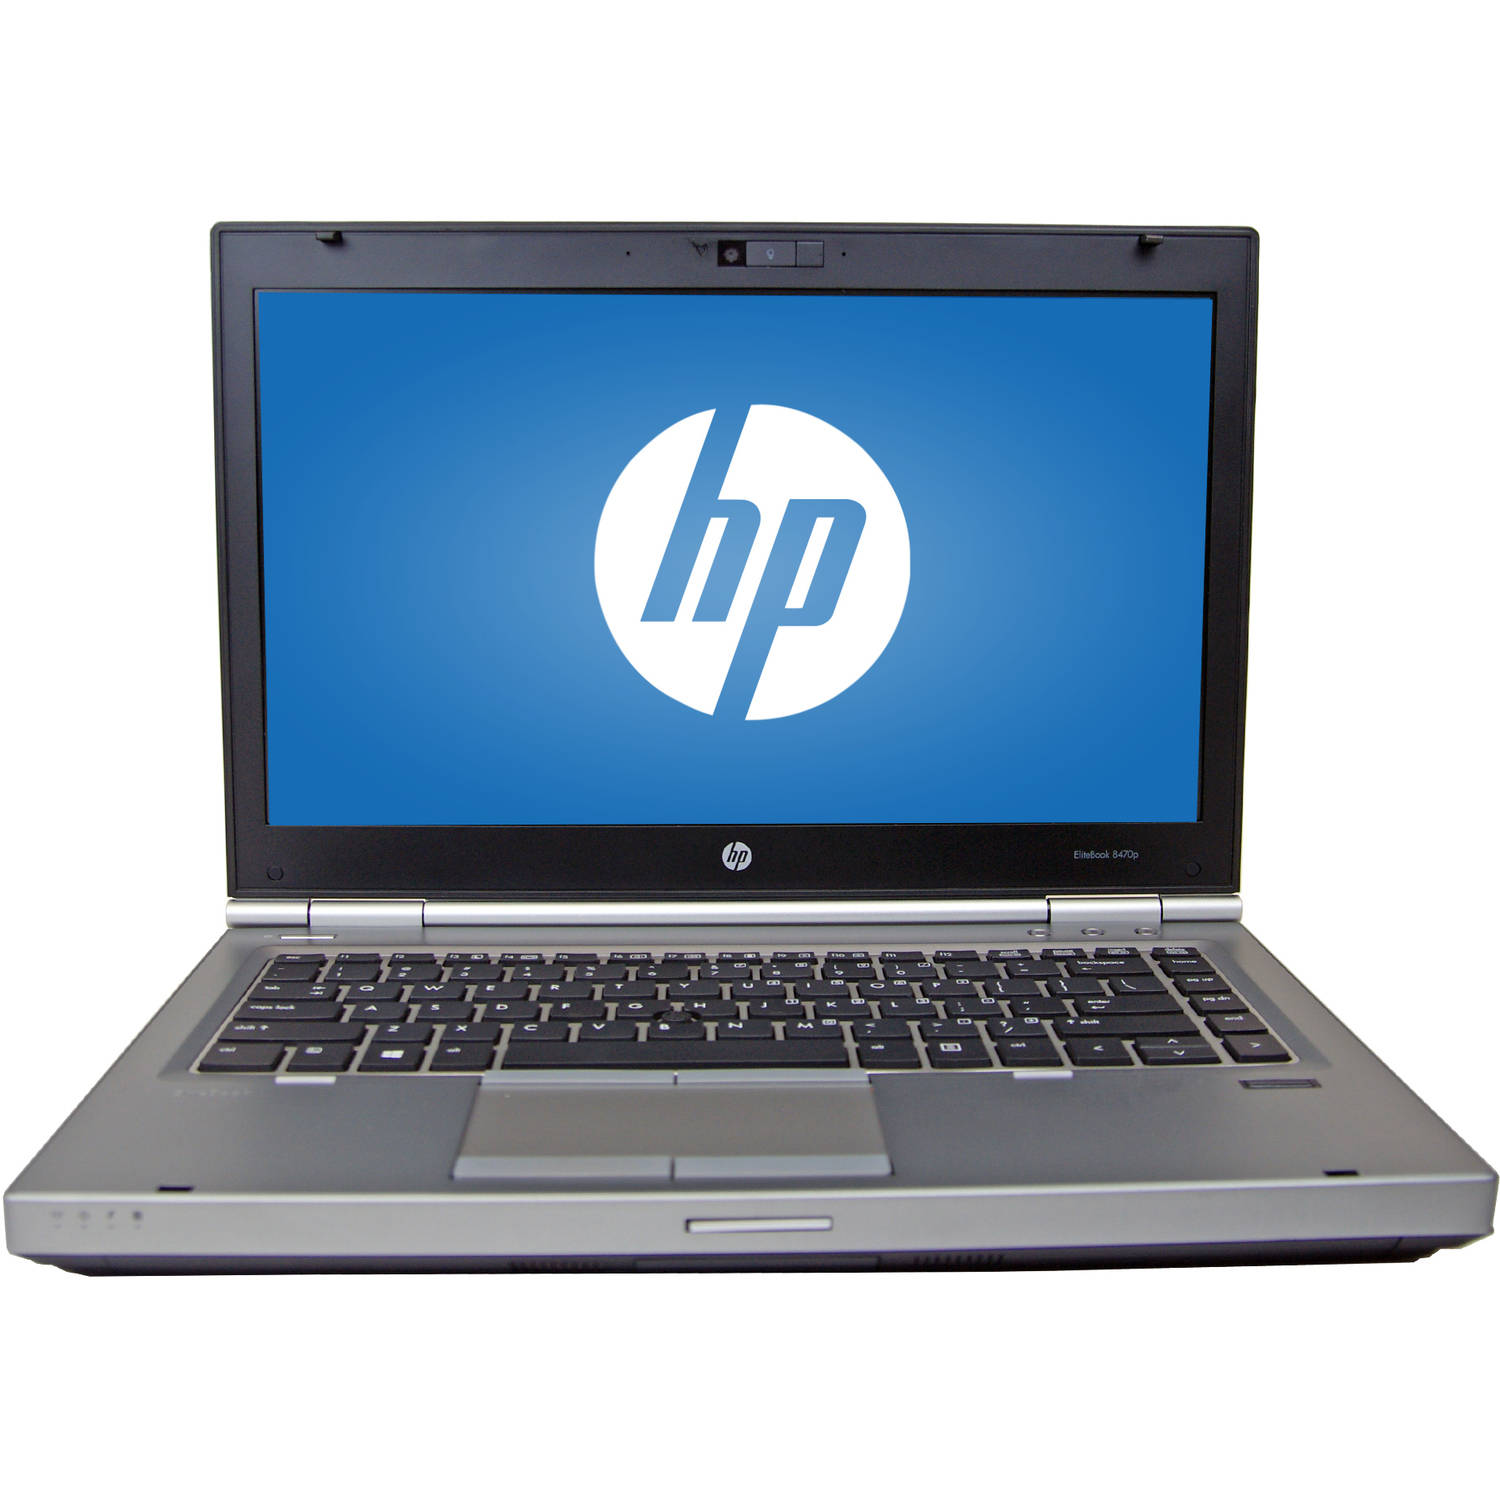 Refurbished HP 14 EliteBook 8470P Laptop PC with Intel Core i5 - 3210M Processor, 4GB Memory, 128GB SSD and Windows 10 Pro